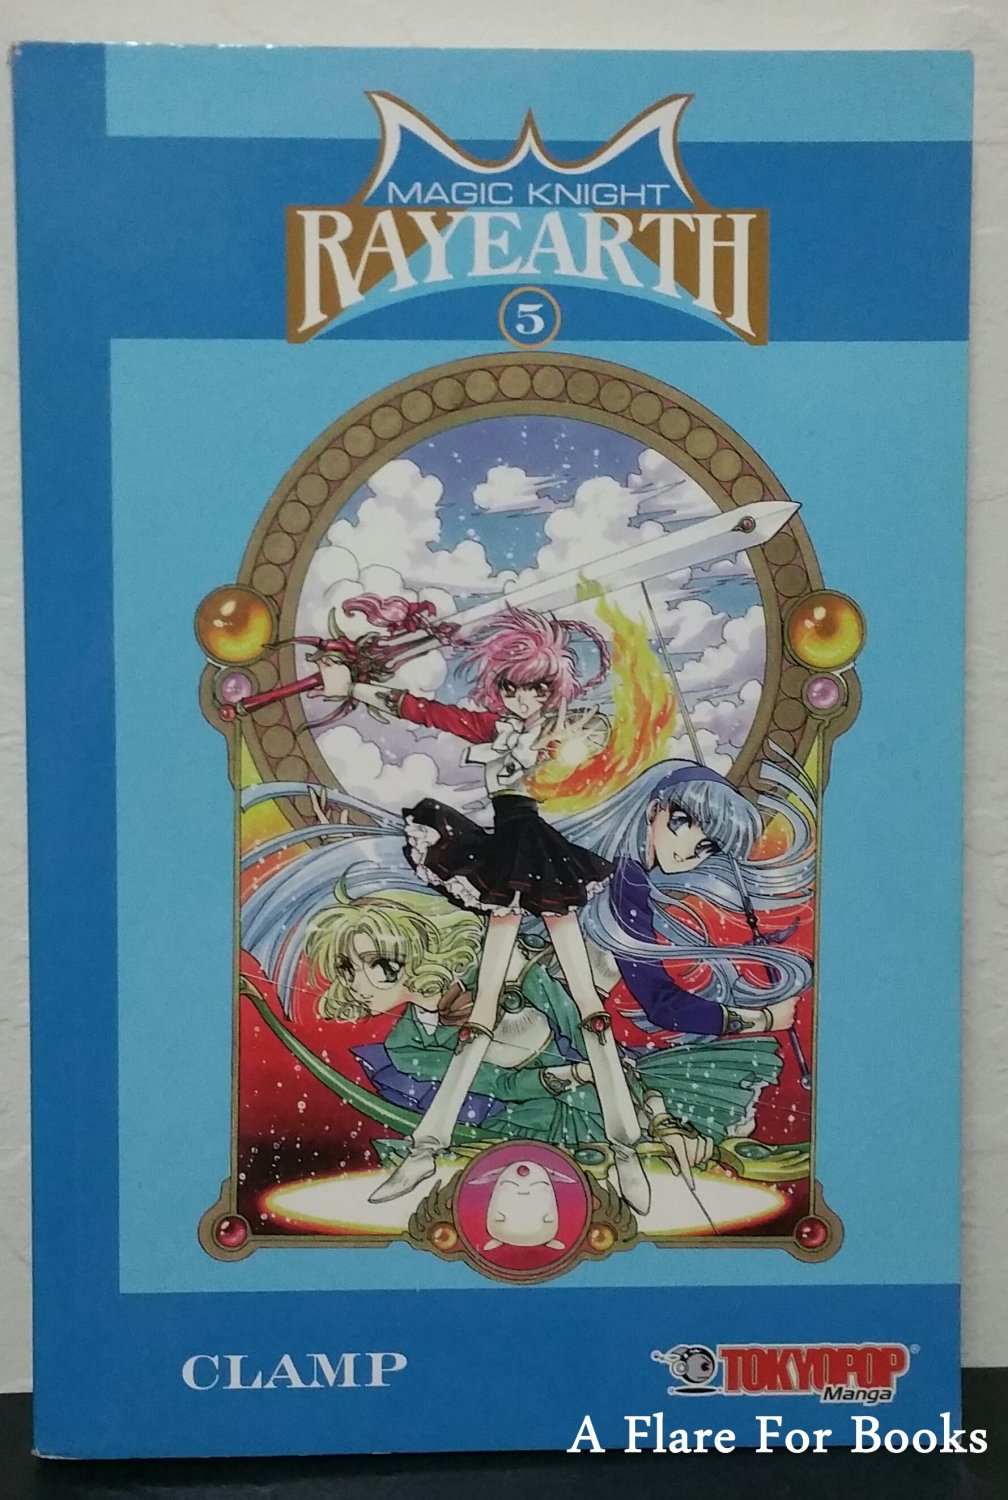 Magic Knight Rayearth vol. 5 by Clamp